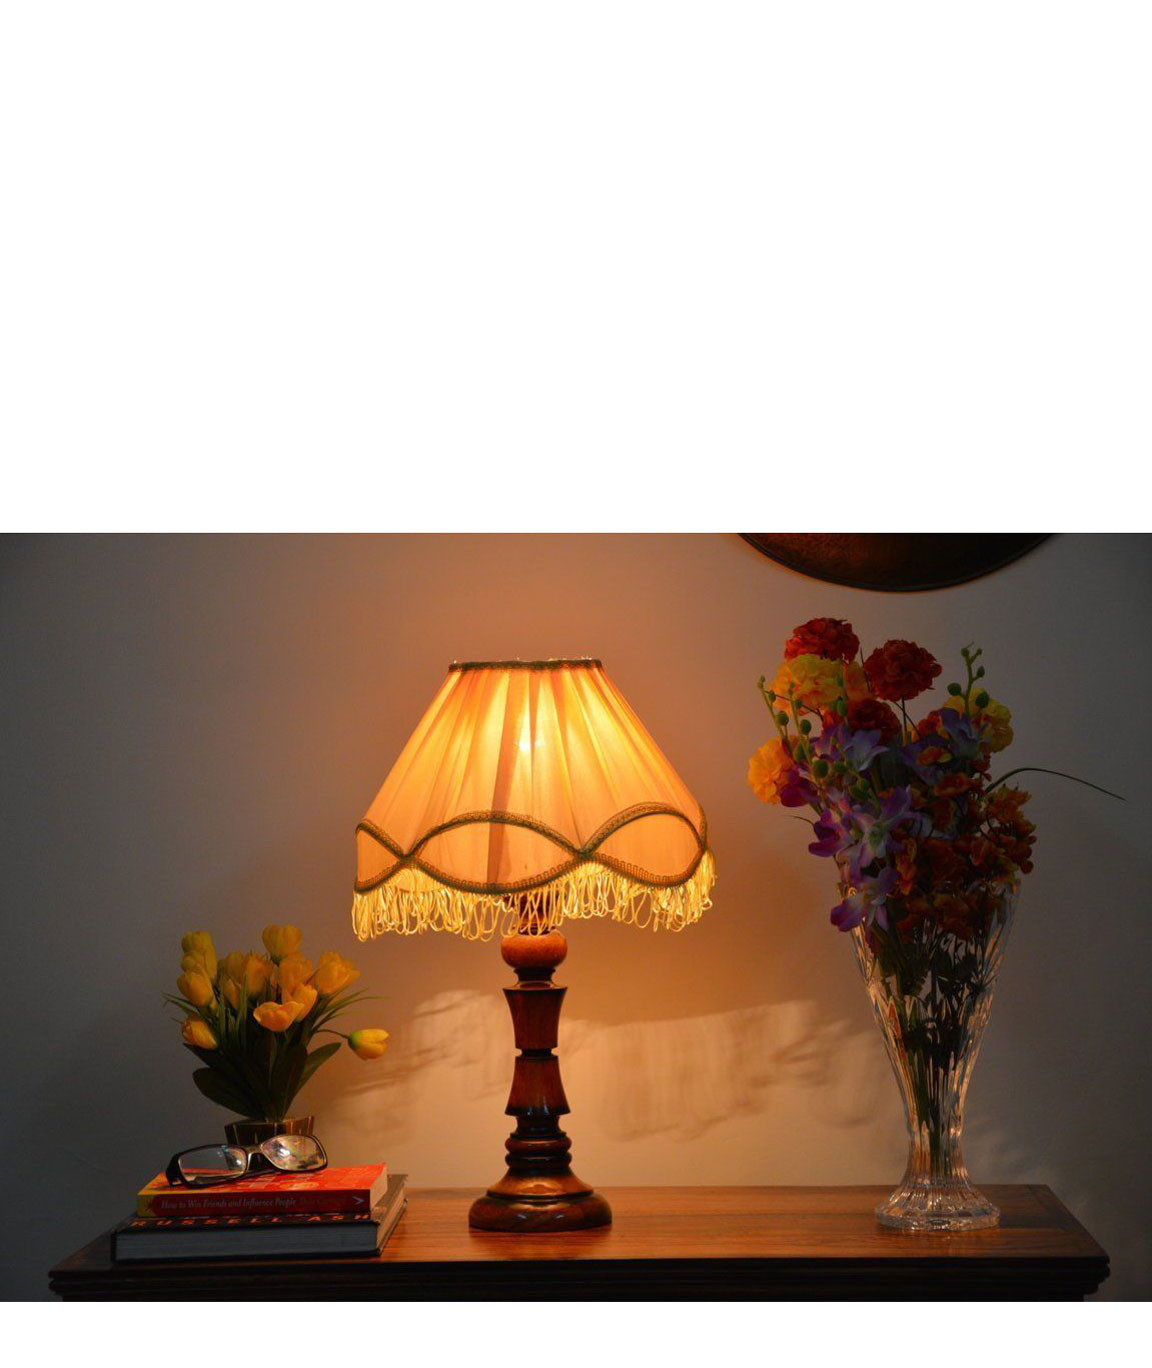 RDC Wooden Designer Table Lamp with 12 Inches Round Pleated Cream with Lace Border with Frills Lamp Shade